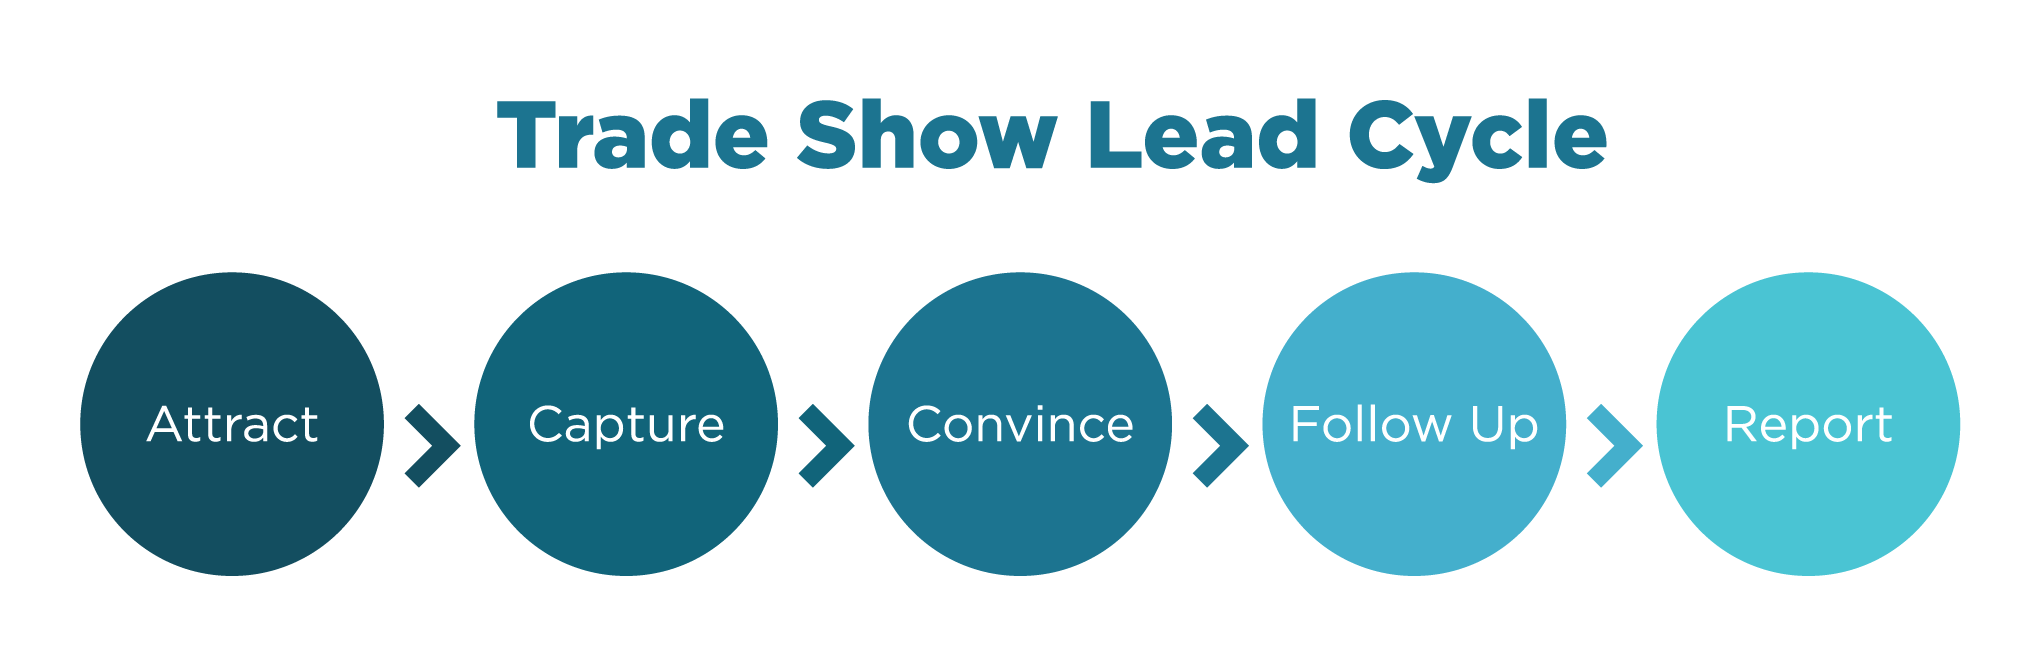 trade show lead cycle infographic